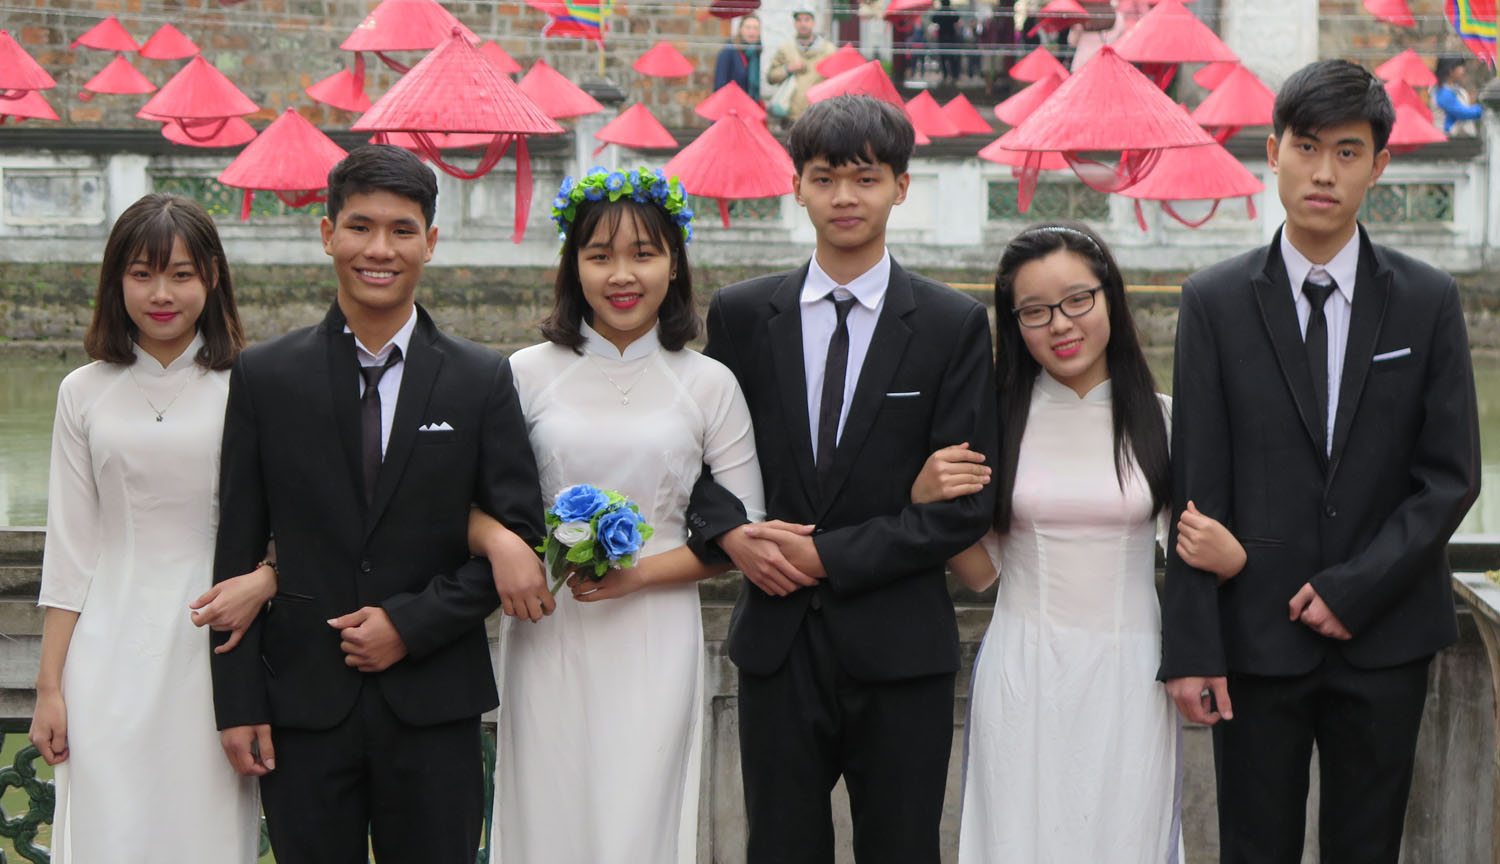 Vietnam-Hanoi-Temple-Of-Literature-Graduates